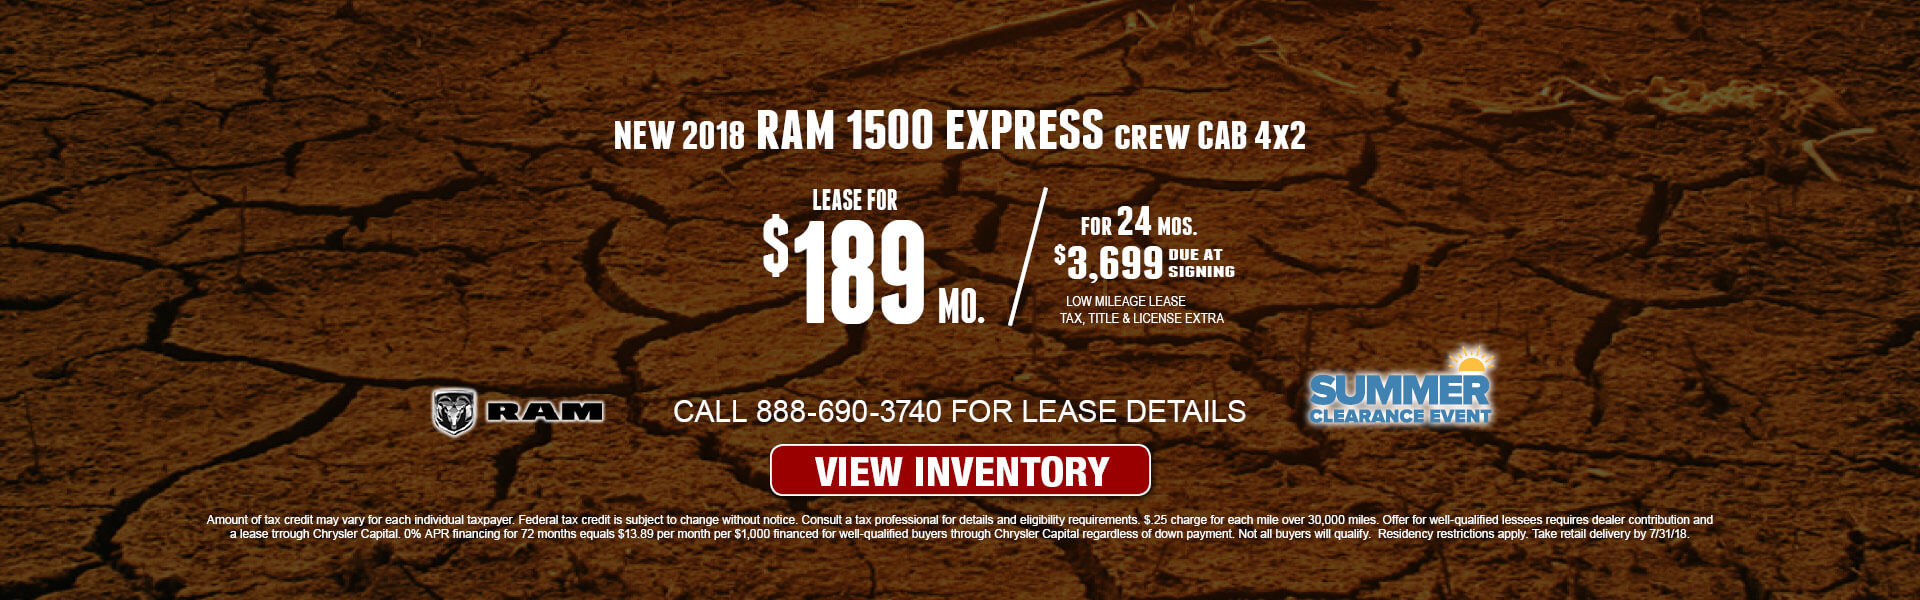 Ram 1500 Express $189 Lease